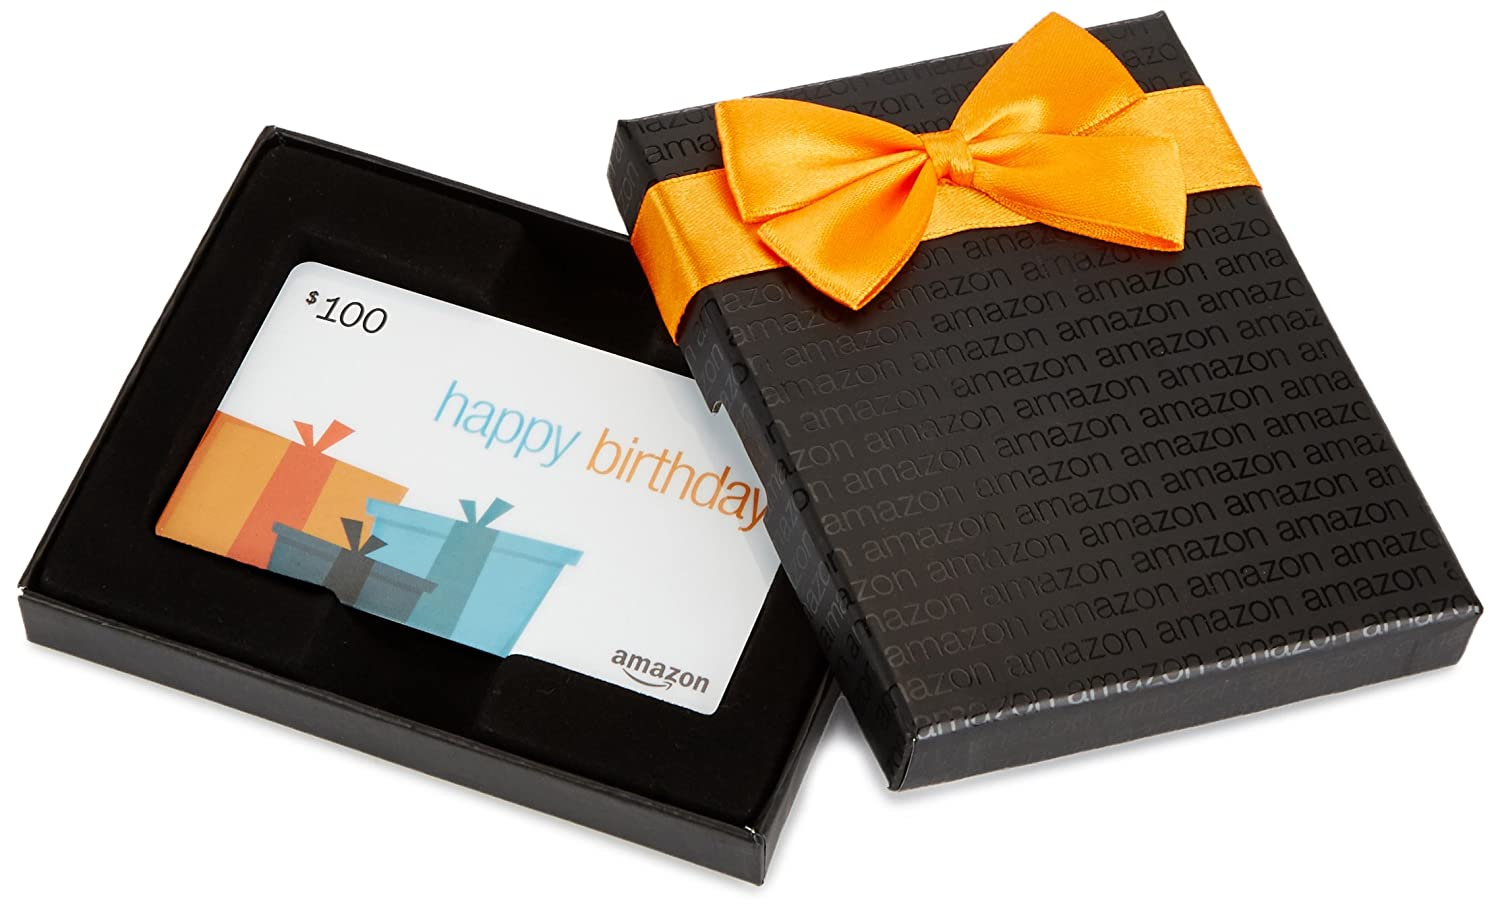 Amazon.com $100 Gift Card in a Black Gift Box (Birthday Presents Card Design)